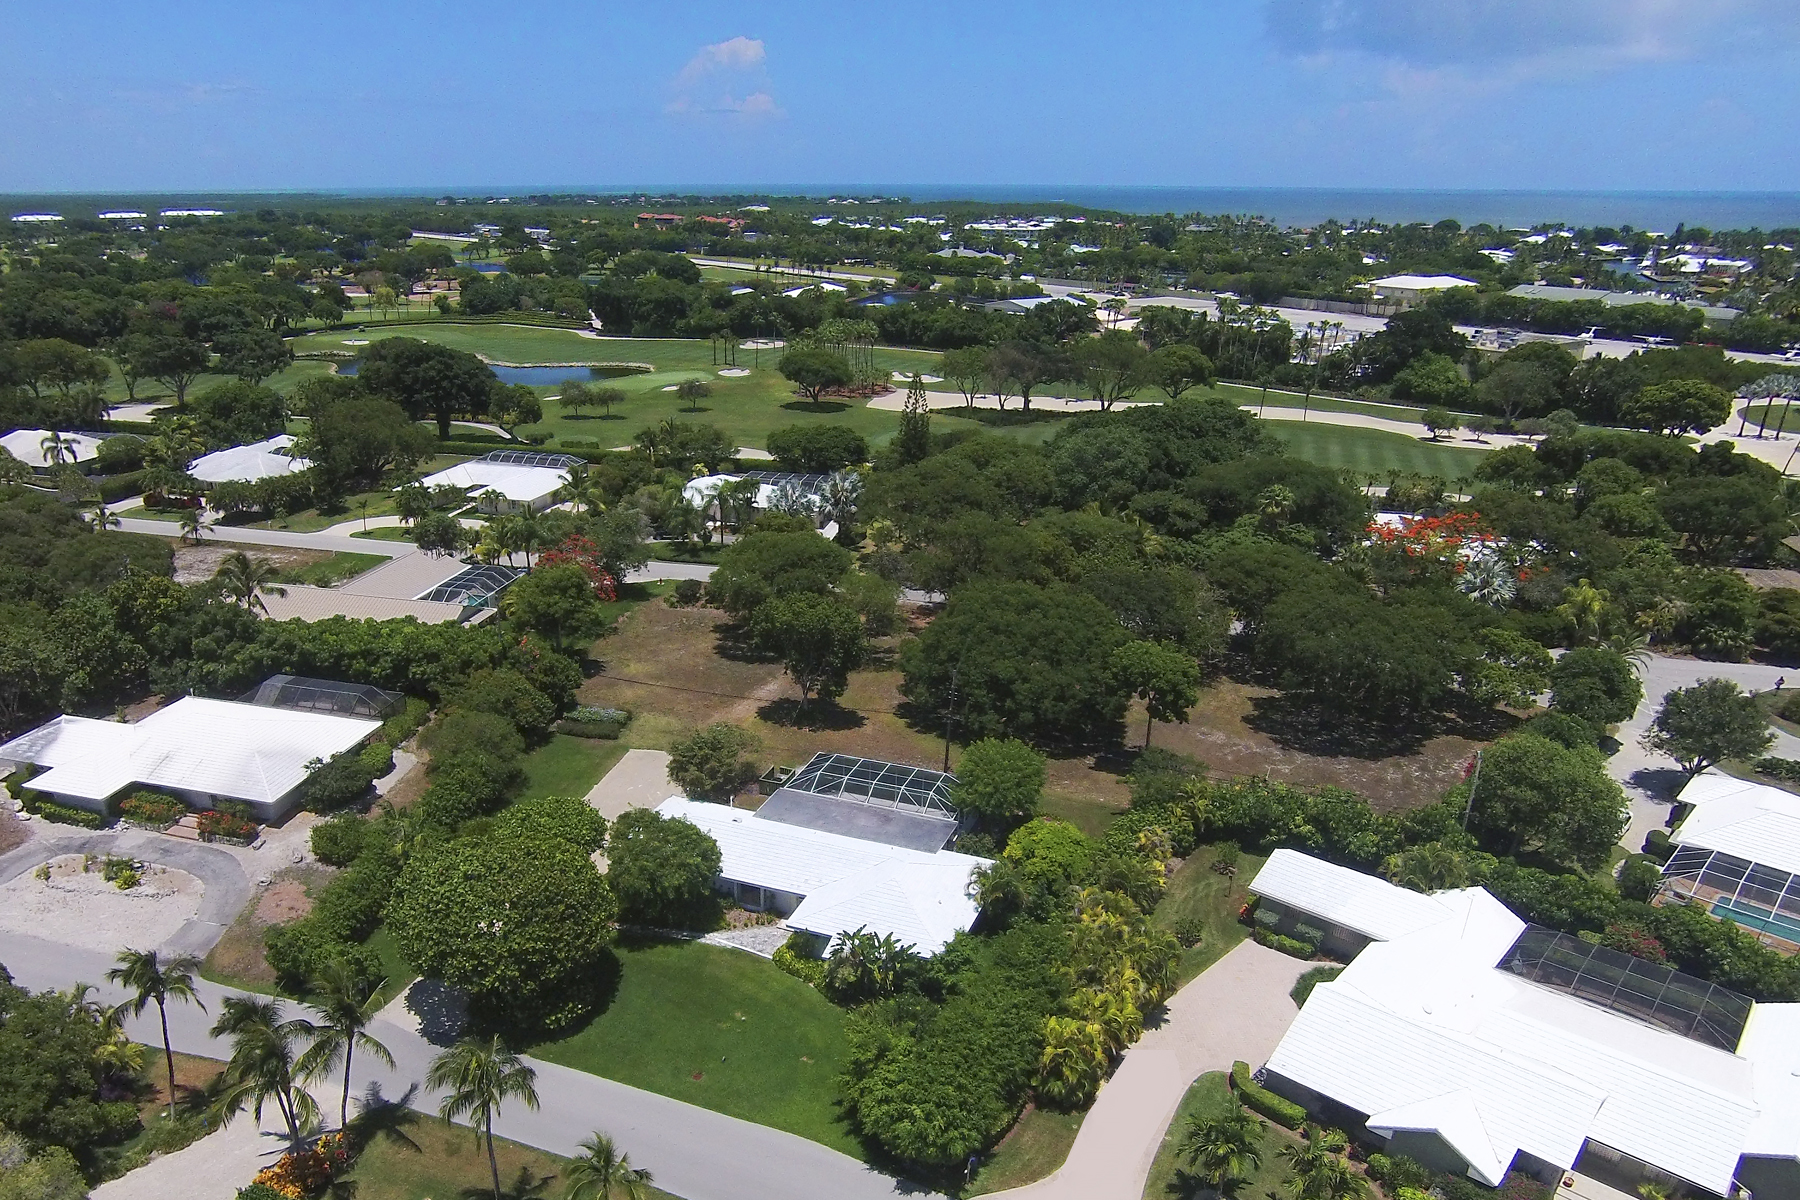 Terreno por un Venta en Vacant Lot at Ocean Reef 11 Country Club Road Ocean Reef Community, Key Largo, Florida, 33037 Estados Unidos